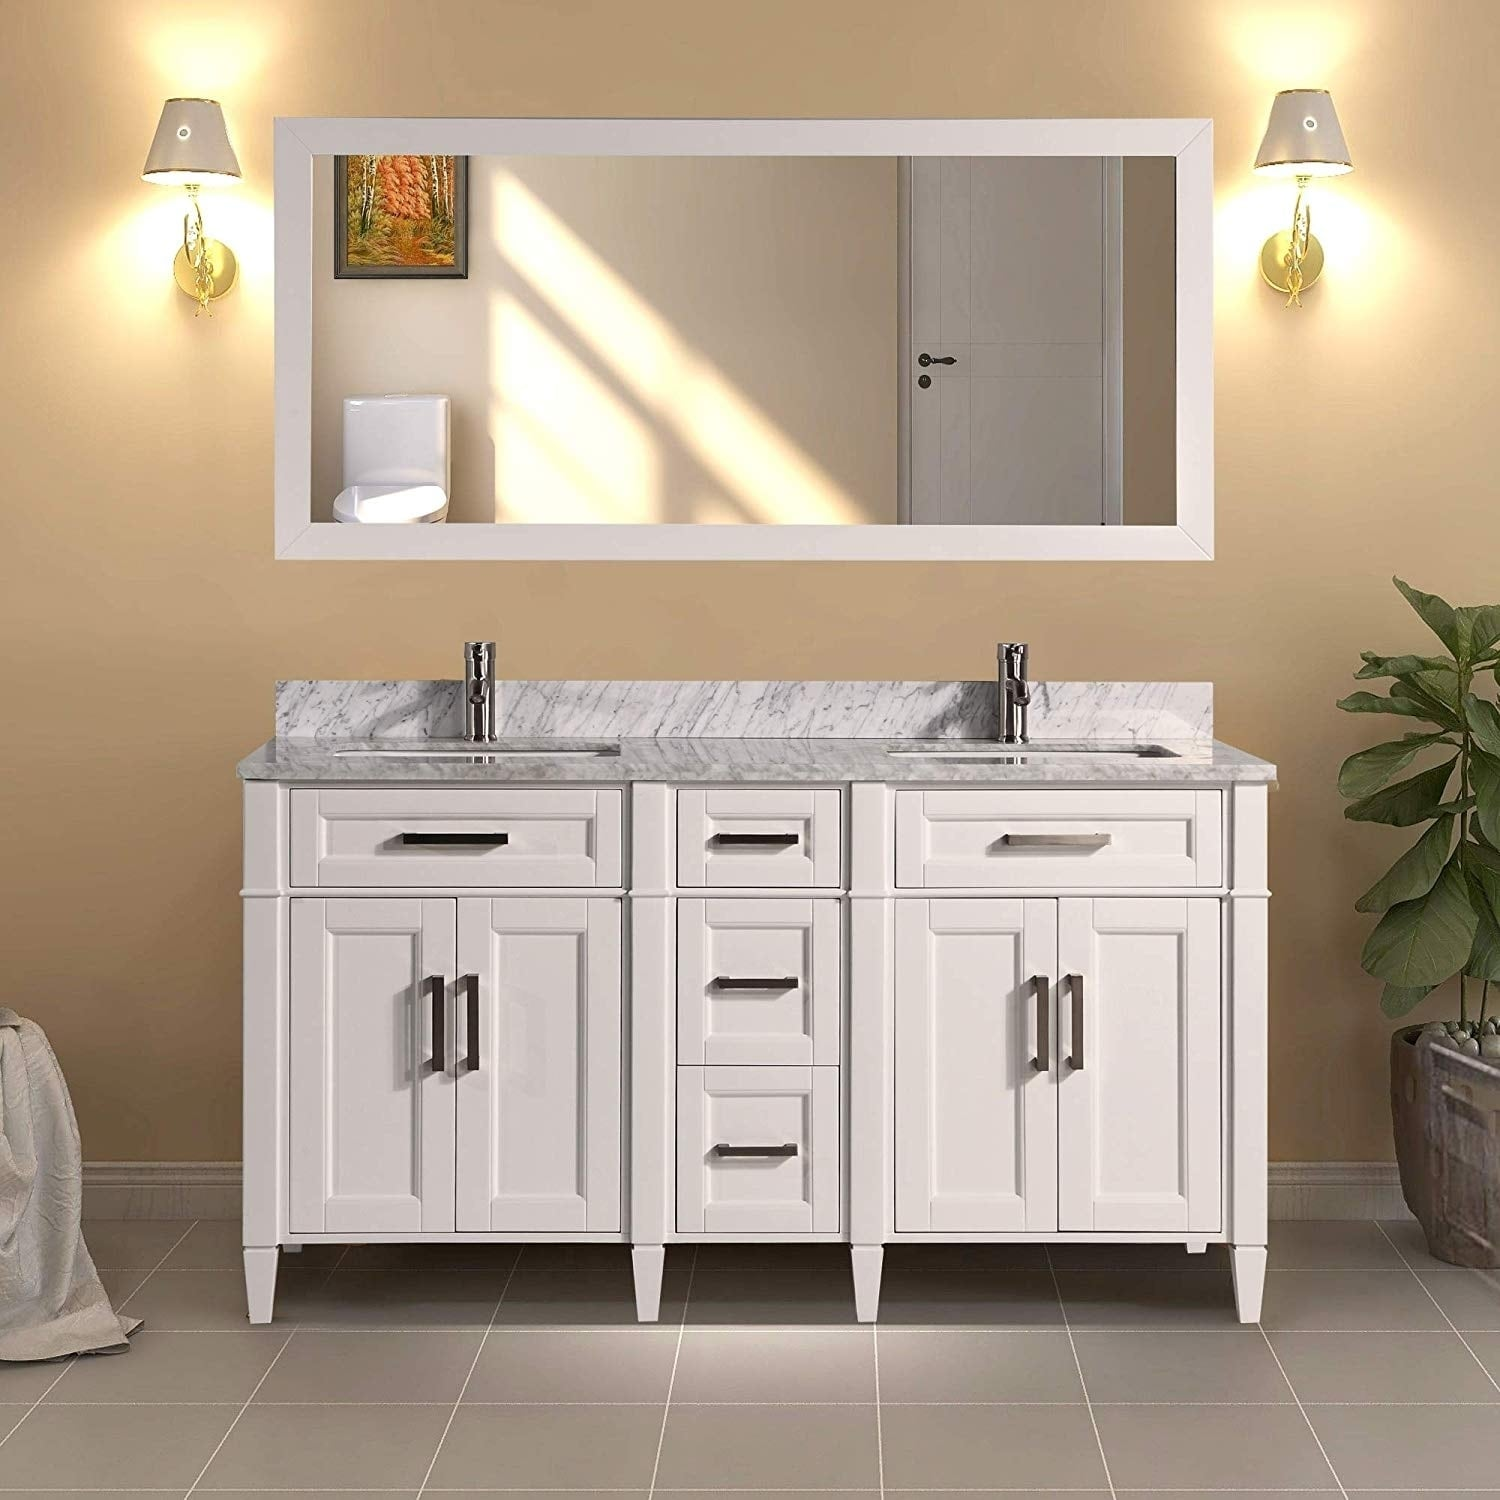 Shop Black Friday Deals On Vanity Art 60 Inch Double Sink Bathroom Vanity Set Carrara Marble Stone Top Soft Closing Doors Undermount Sink With Free Mirror Overstock 12364442